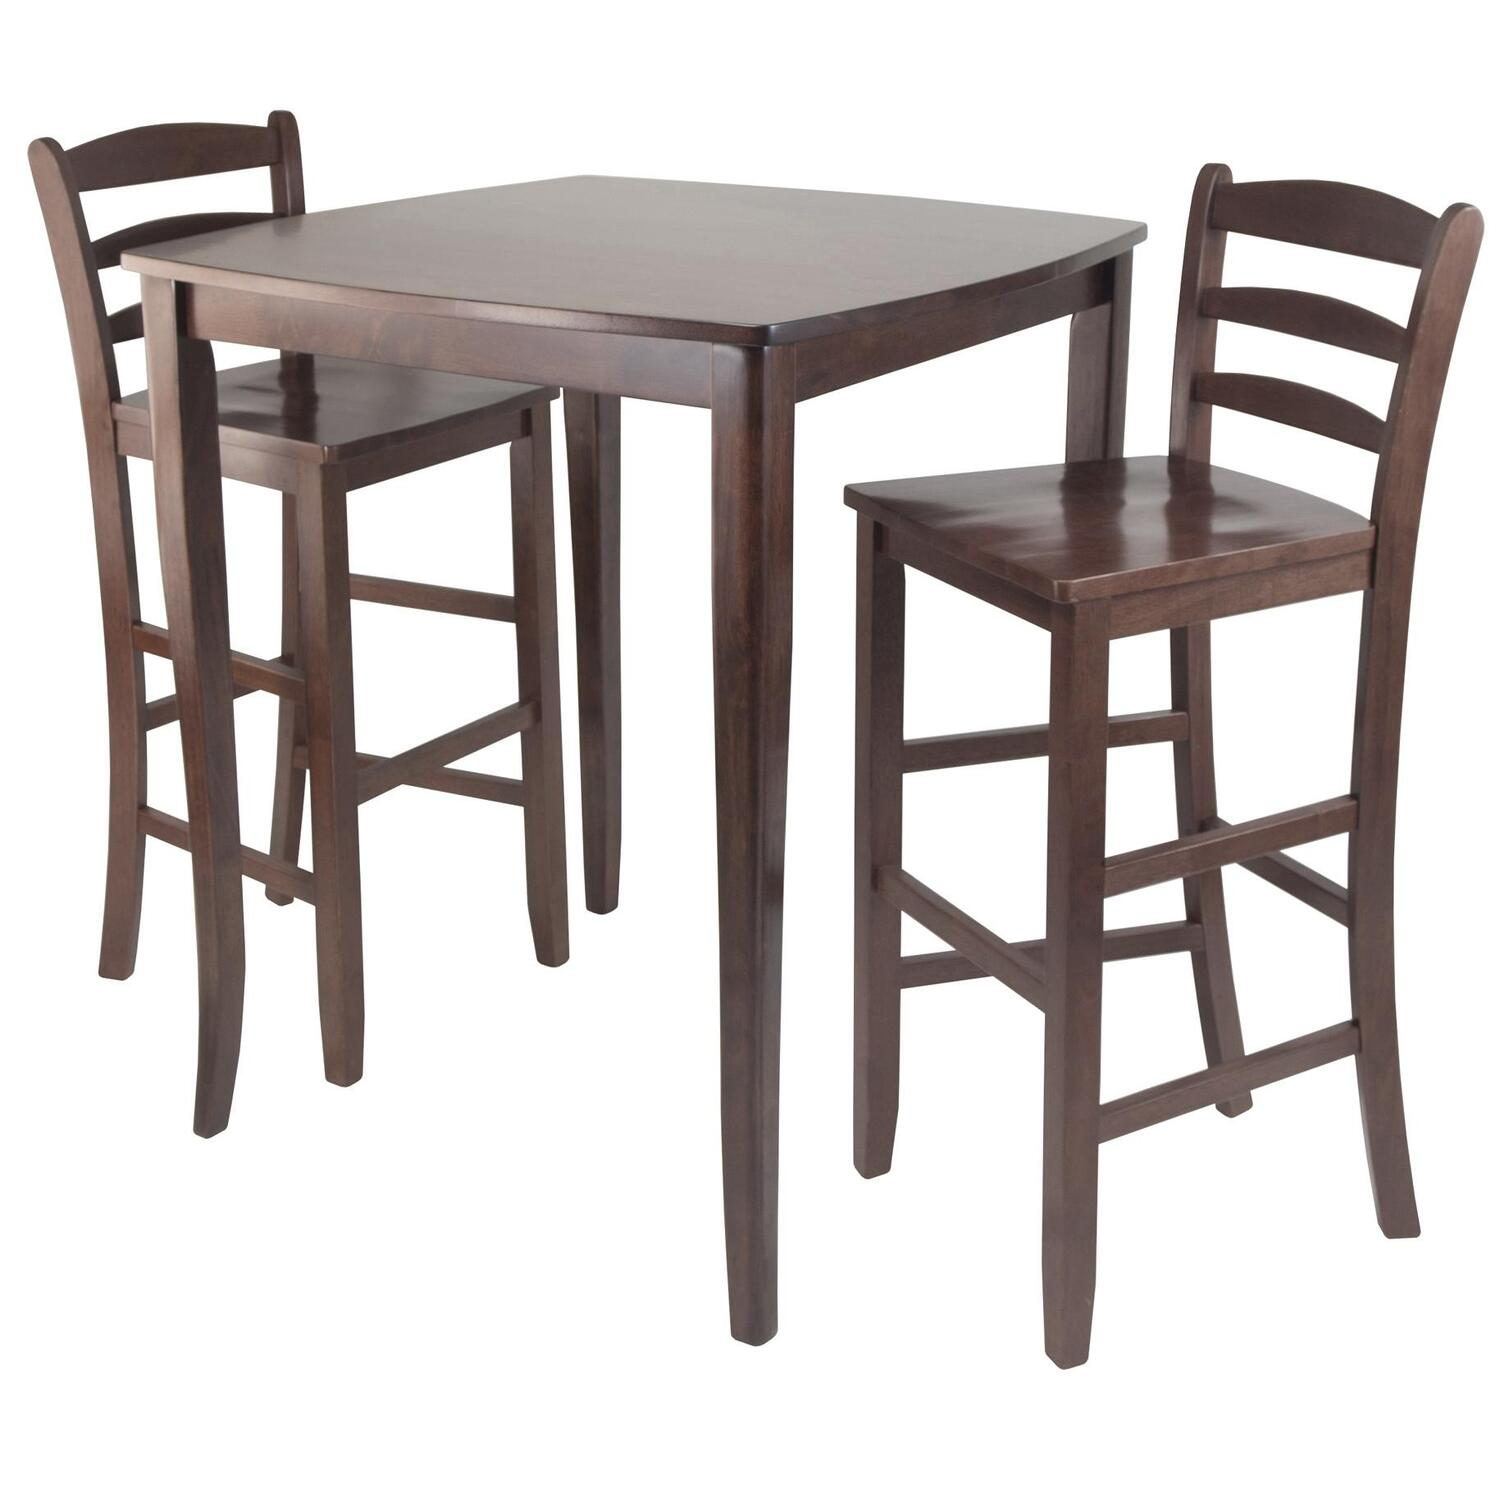 Incredible Winsome Wood 3Pc Inglewood High Pub Dining Table With Ladder Back Stool Lamtechconsult Wood Chair Design Ideas Lamtechconsultcom